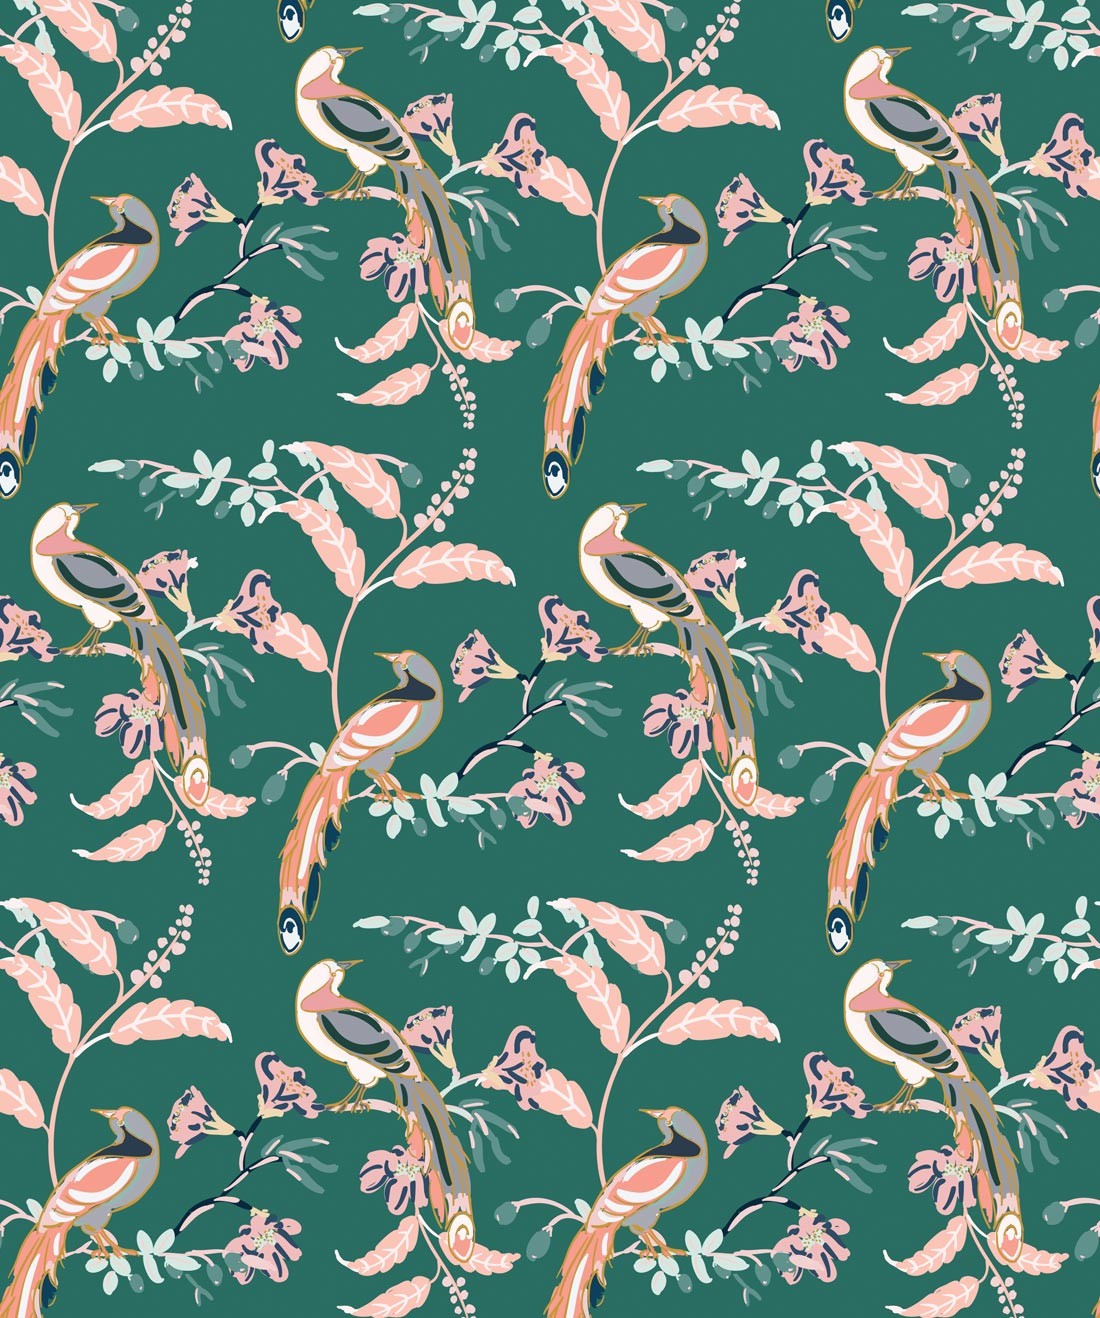 Birds Of Paradise Wallpaper In Green Vogue From The